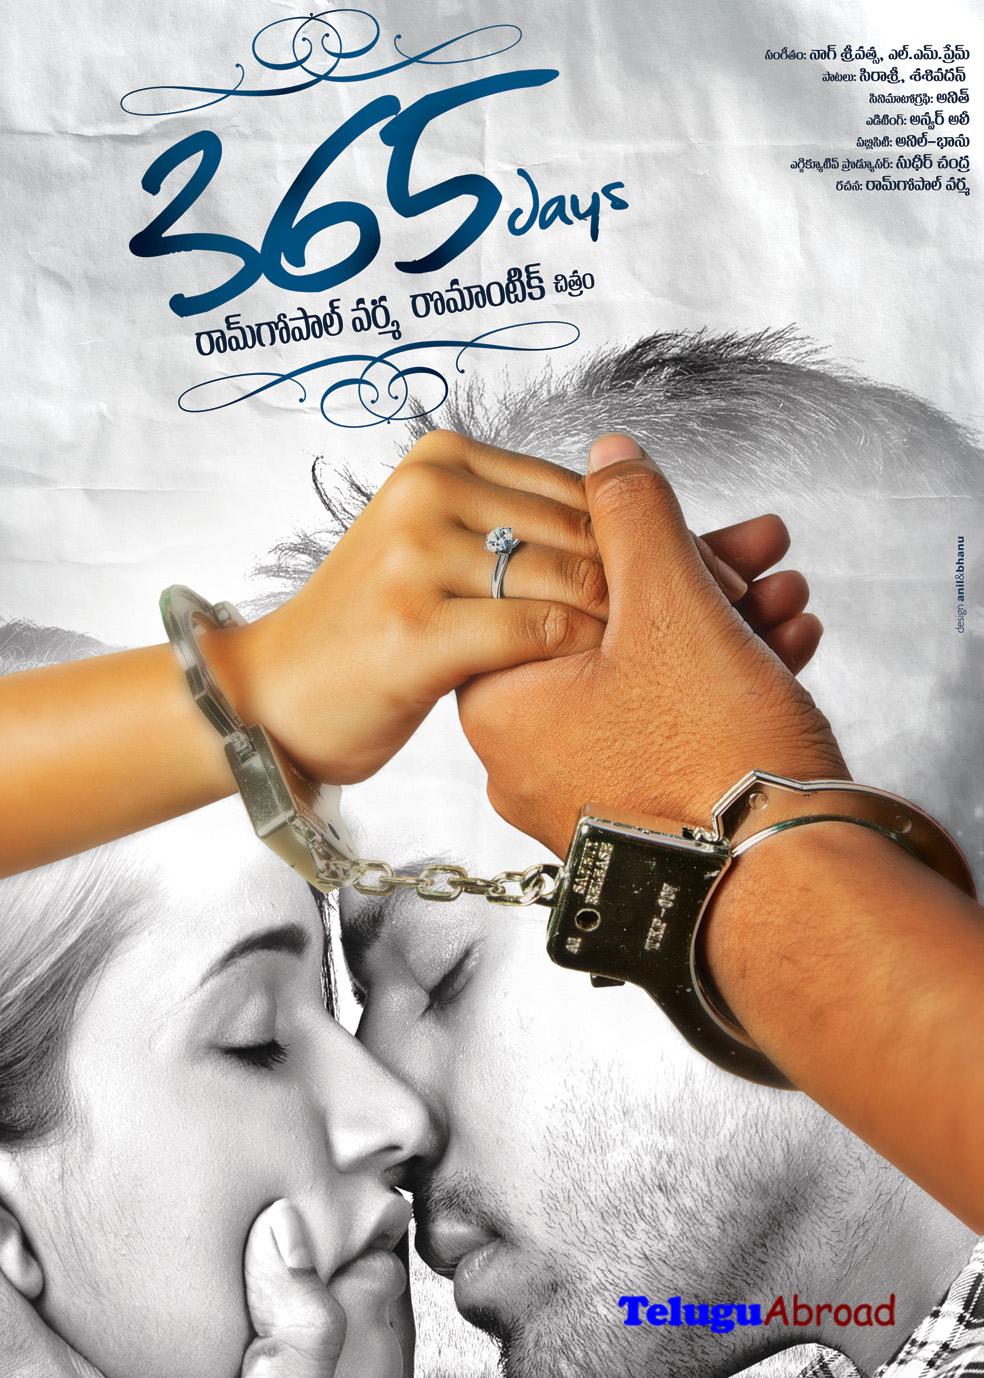 Ram Gopal Varma 365 days first look